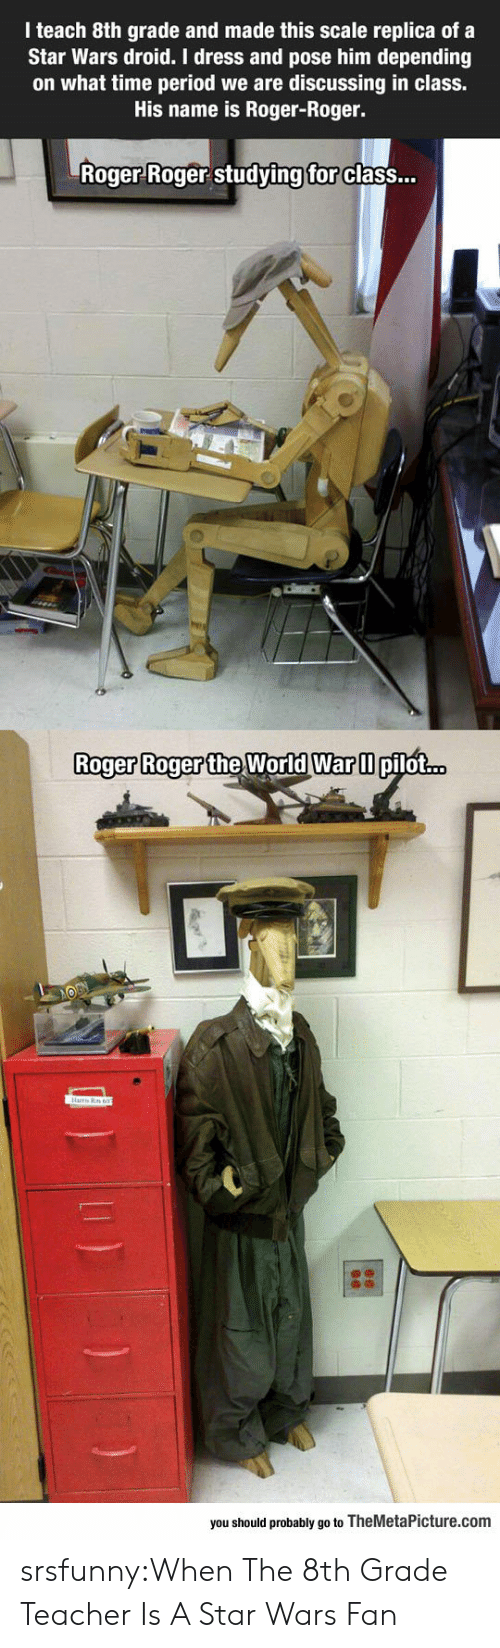 Period, Roger, and Star Wars: I teach 8th grade and made this scale replica of a  Star Wars droid. I dress and pose him depending  on what time period we are discussing in class.  His name is Roger-Roger.  Roger Roger studving  for  class...  Roger Roger the World Warm  Roger Roger the World War ll pilot...  you should probably go to TheMetaPicture.com srsfunny:When The 8th Grade Teacher Is A Star Wars Fan